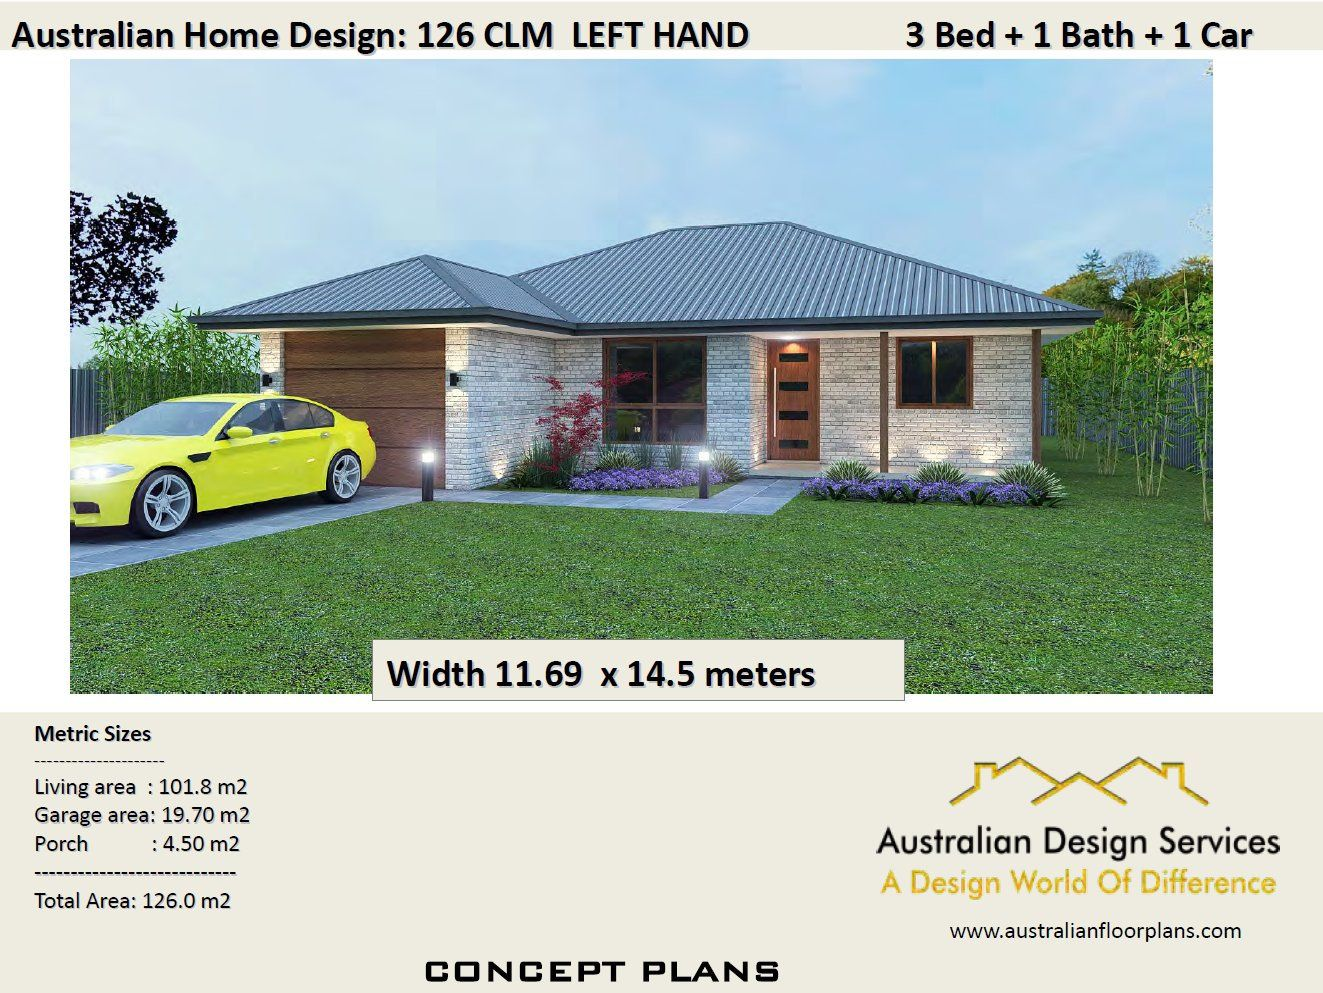 3 Bed House Plans Single Garage For Sale 126 M2 3 Bedroom Plans Small Home Single Garage House Plans Single Garage Modern Garage House Plans House Plans Beach House Plans